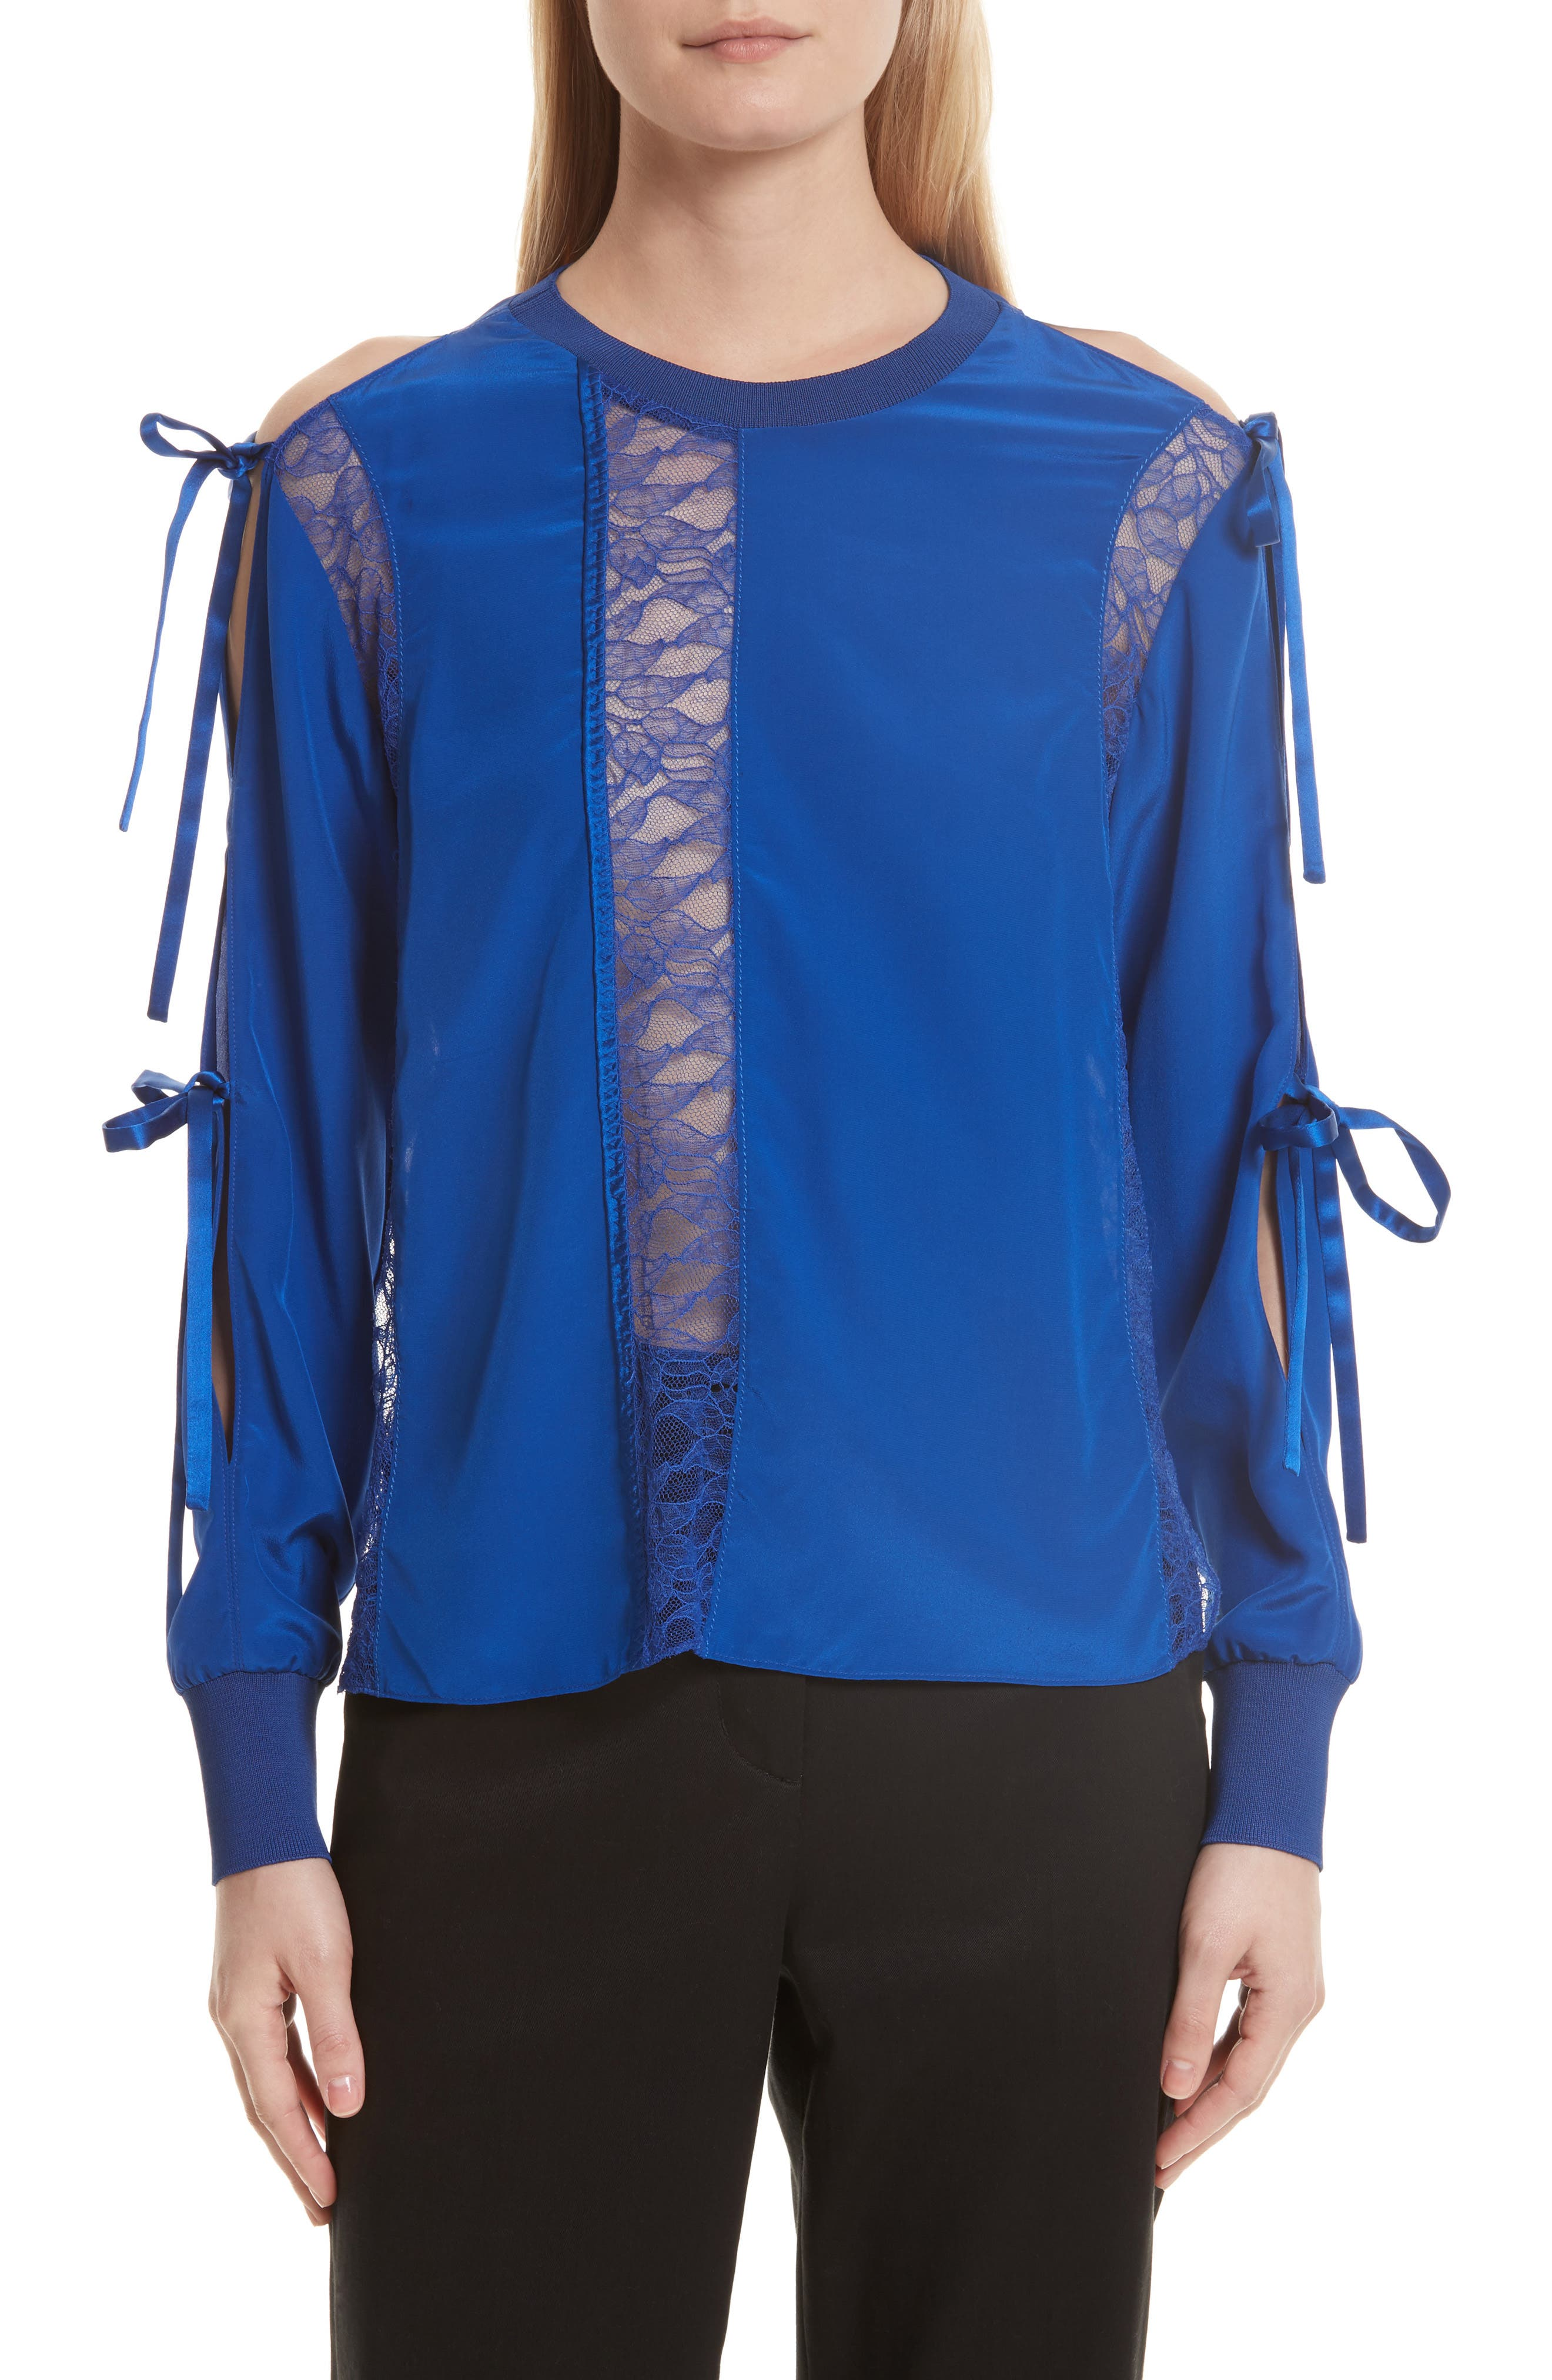 Main Image - 3.1 Phillip Lim Silk Tied Cold Shoulder Top